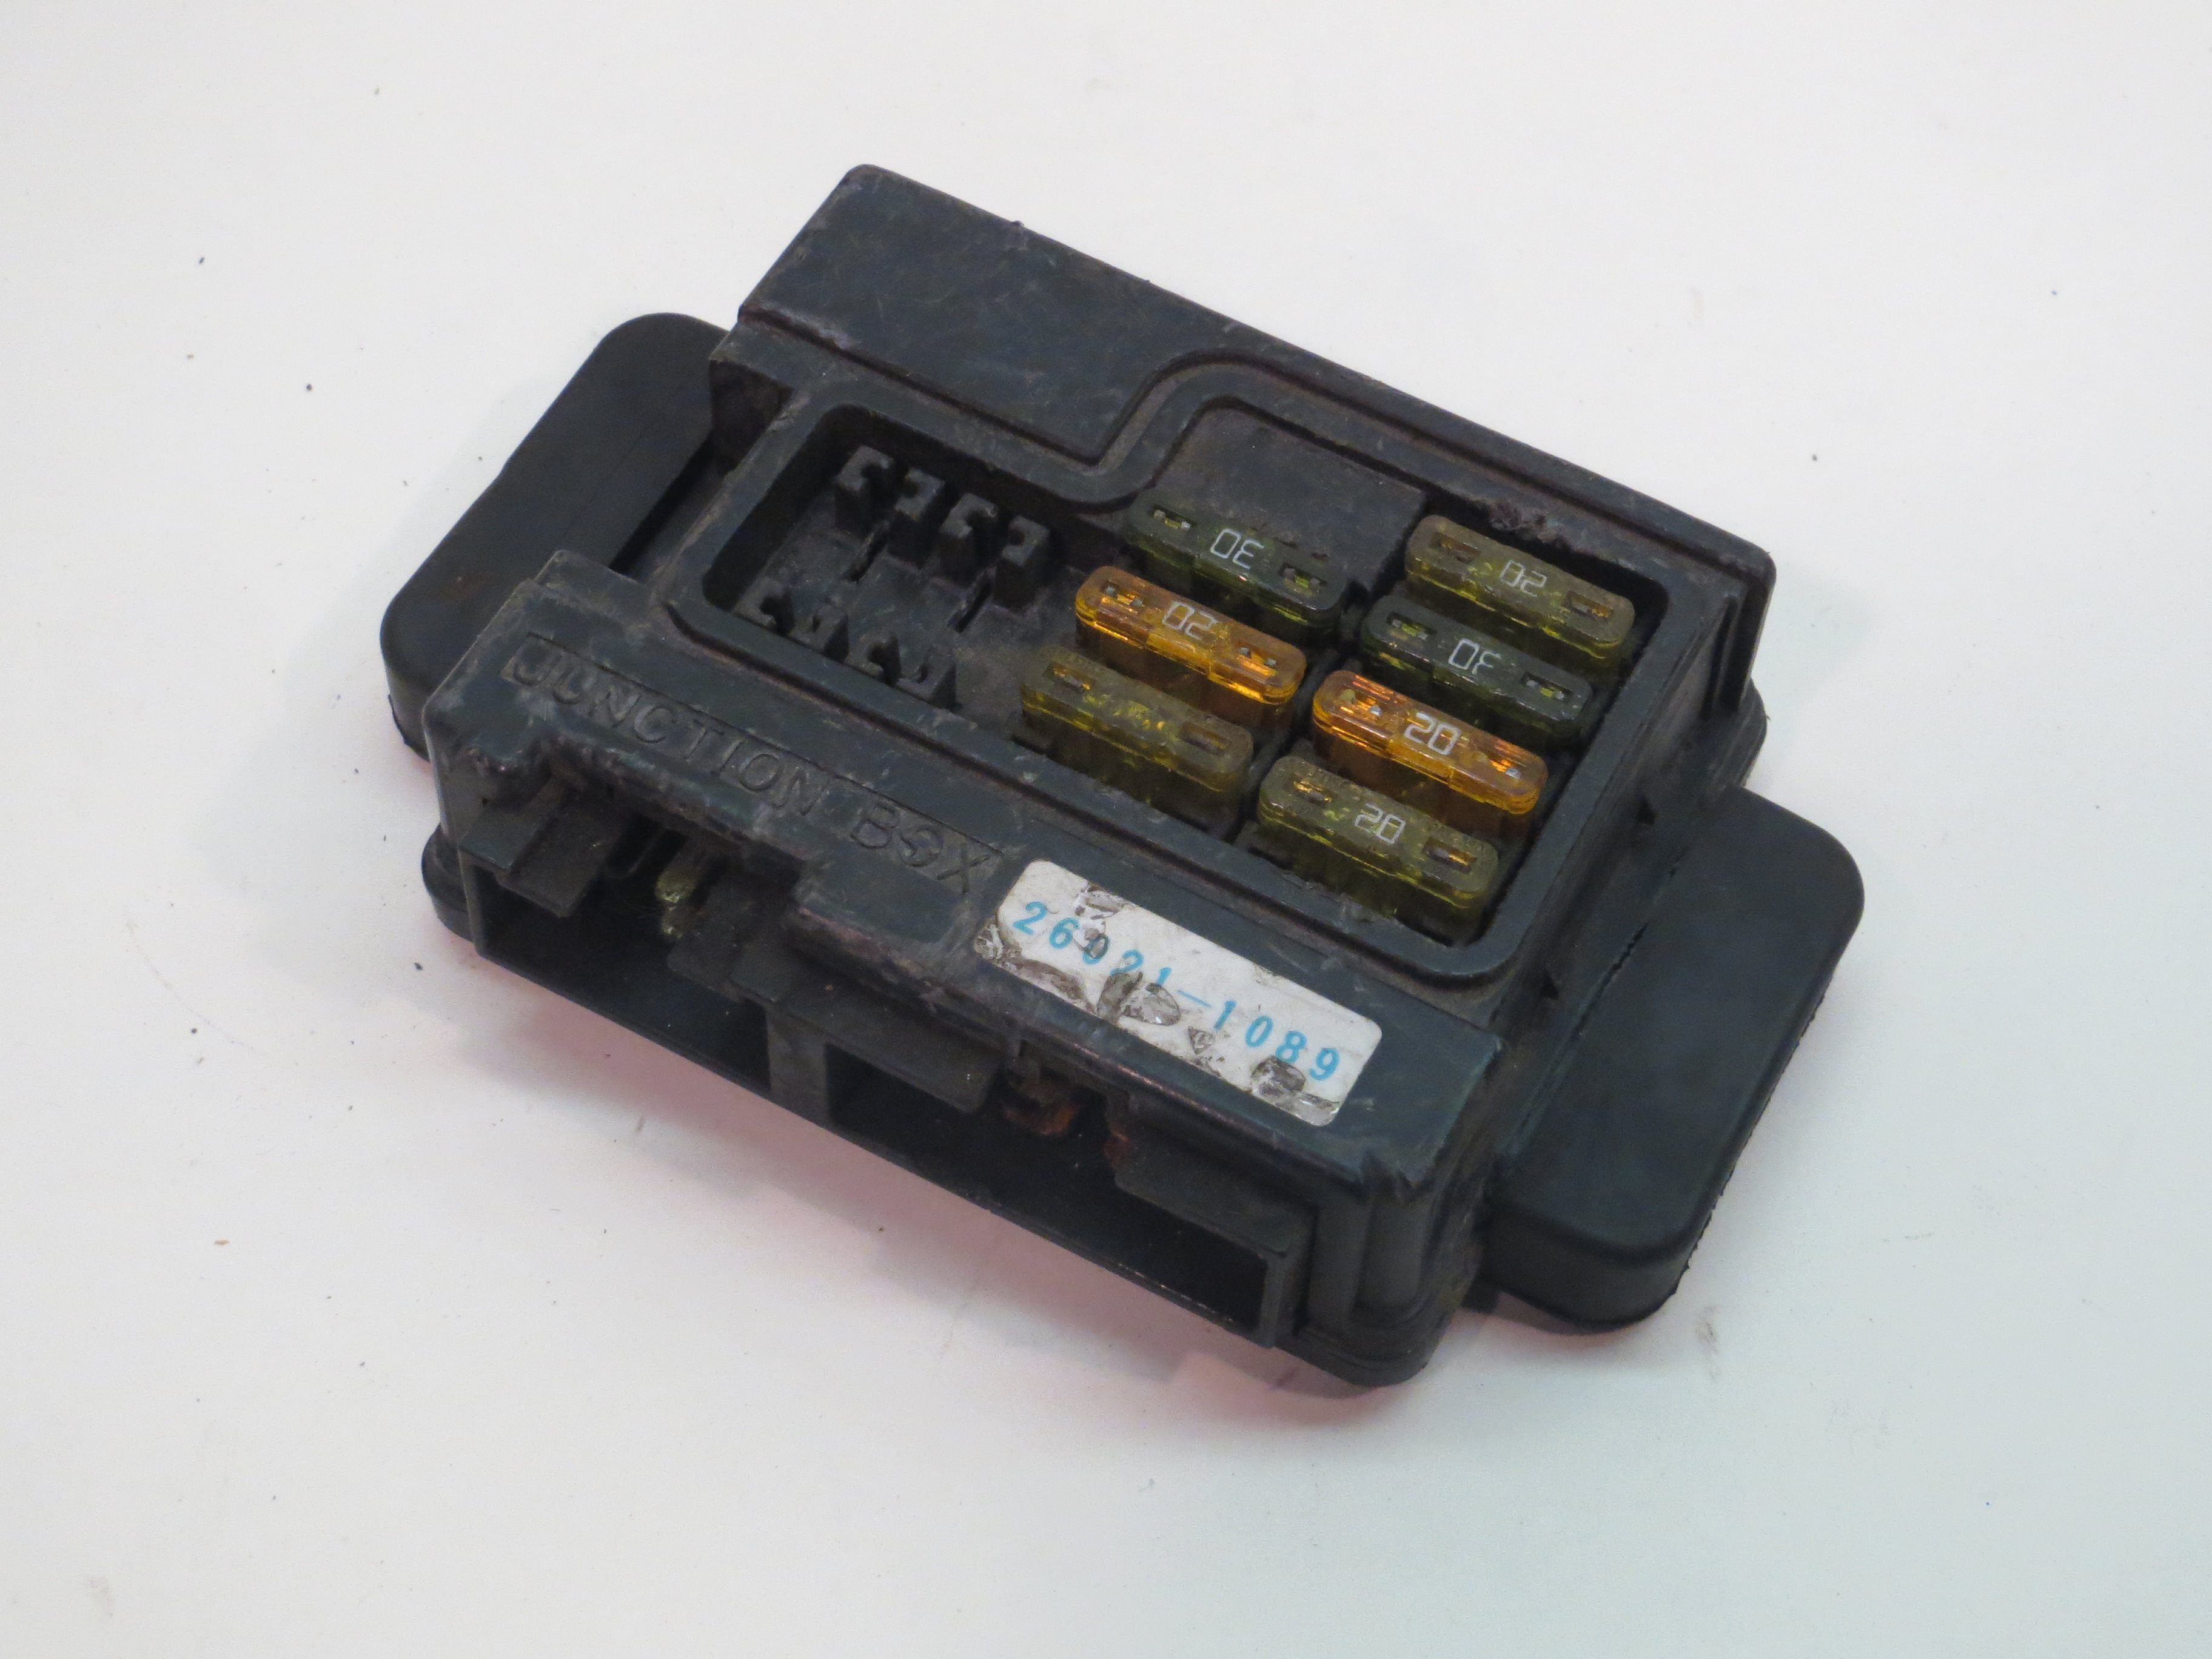 Kawasaki Junction Fuse Box EN500 EX250 EX500 VN800 VN1500 ZX600 ZX1100  ZX1200 99 - 09